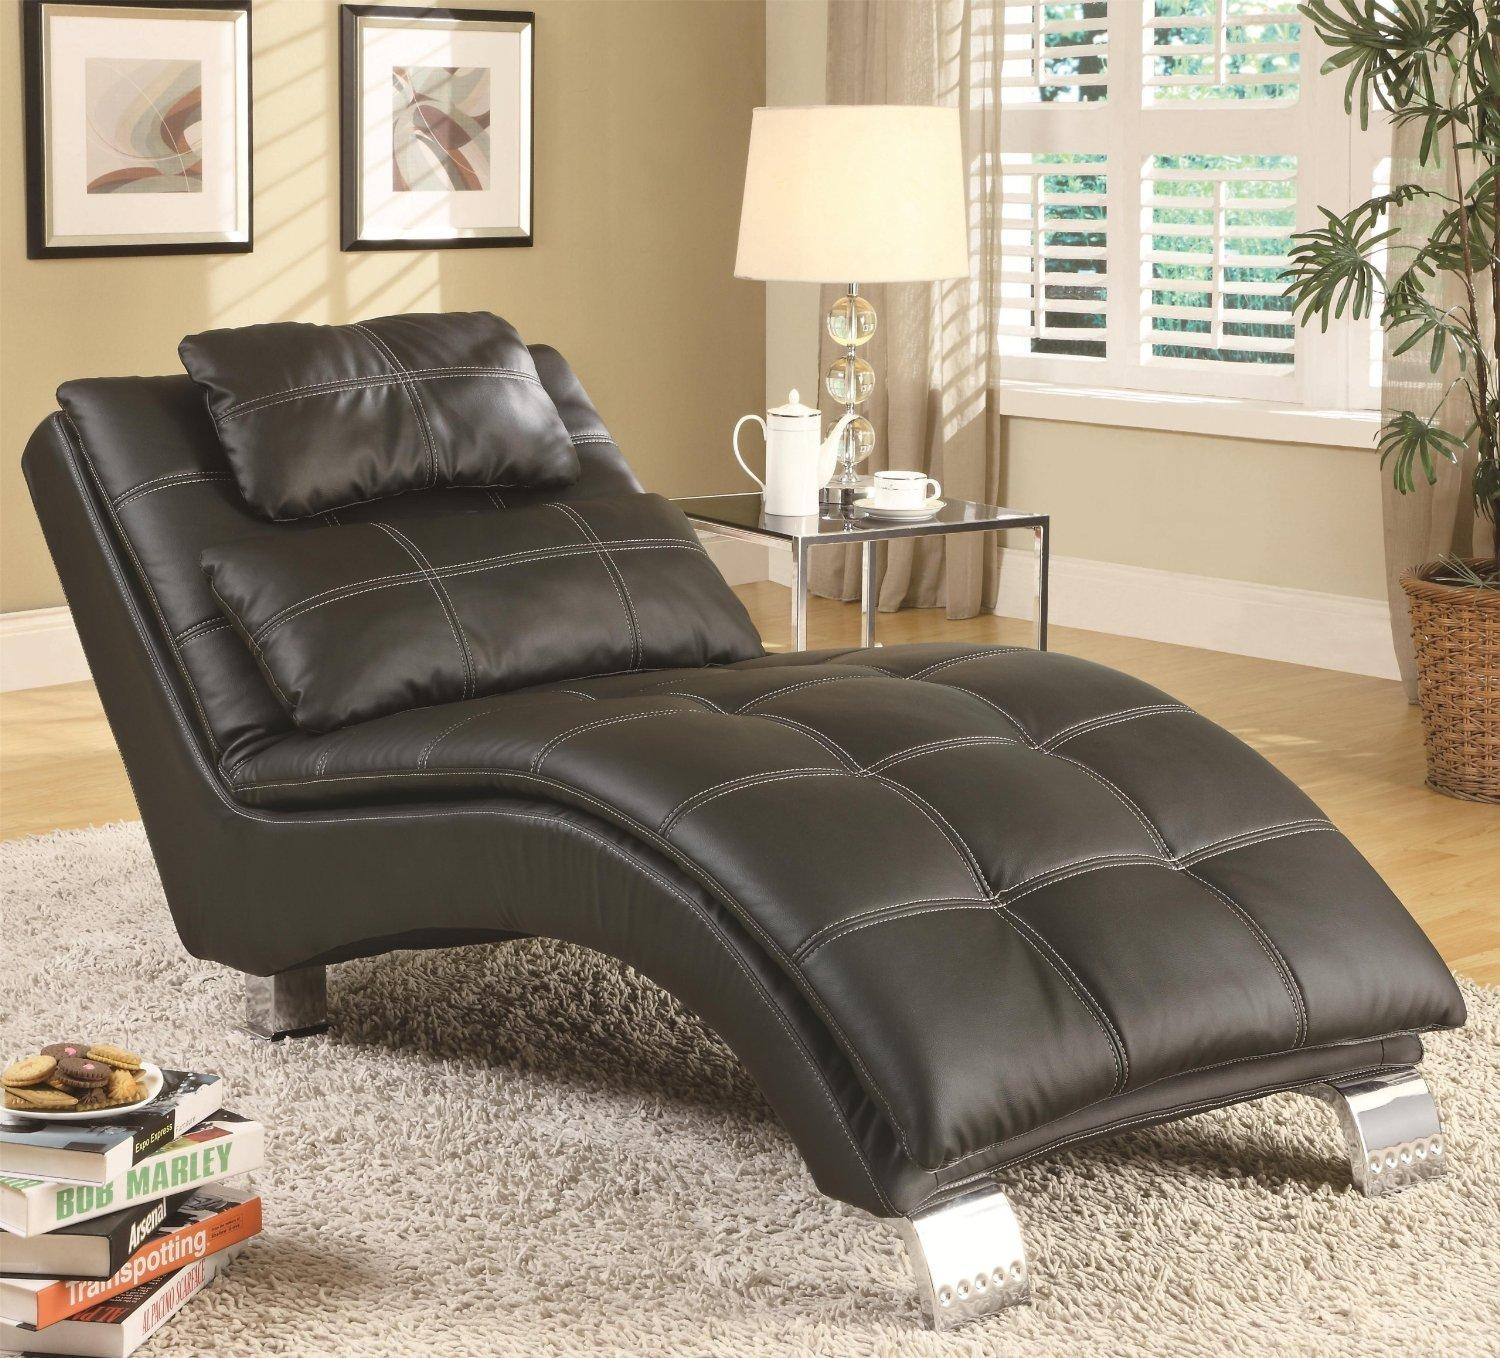 Sofas Center : Leather Faux Couches Chairs Ottomans Ikea Striking Regarding Chaise Sofa Chairs (View 4 of 20)